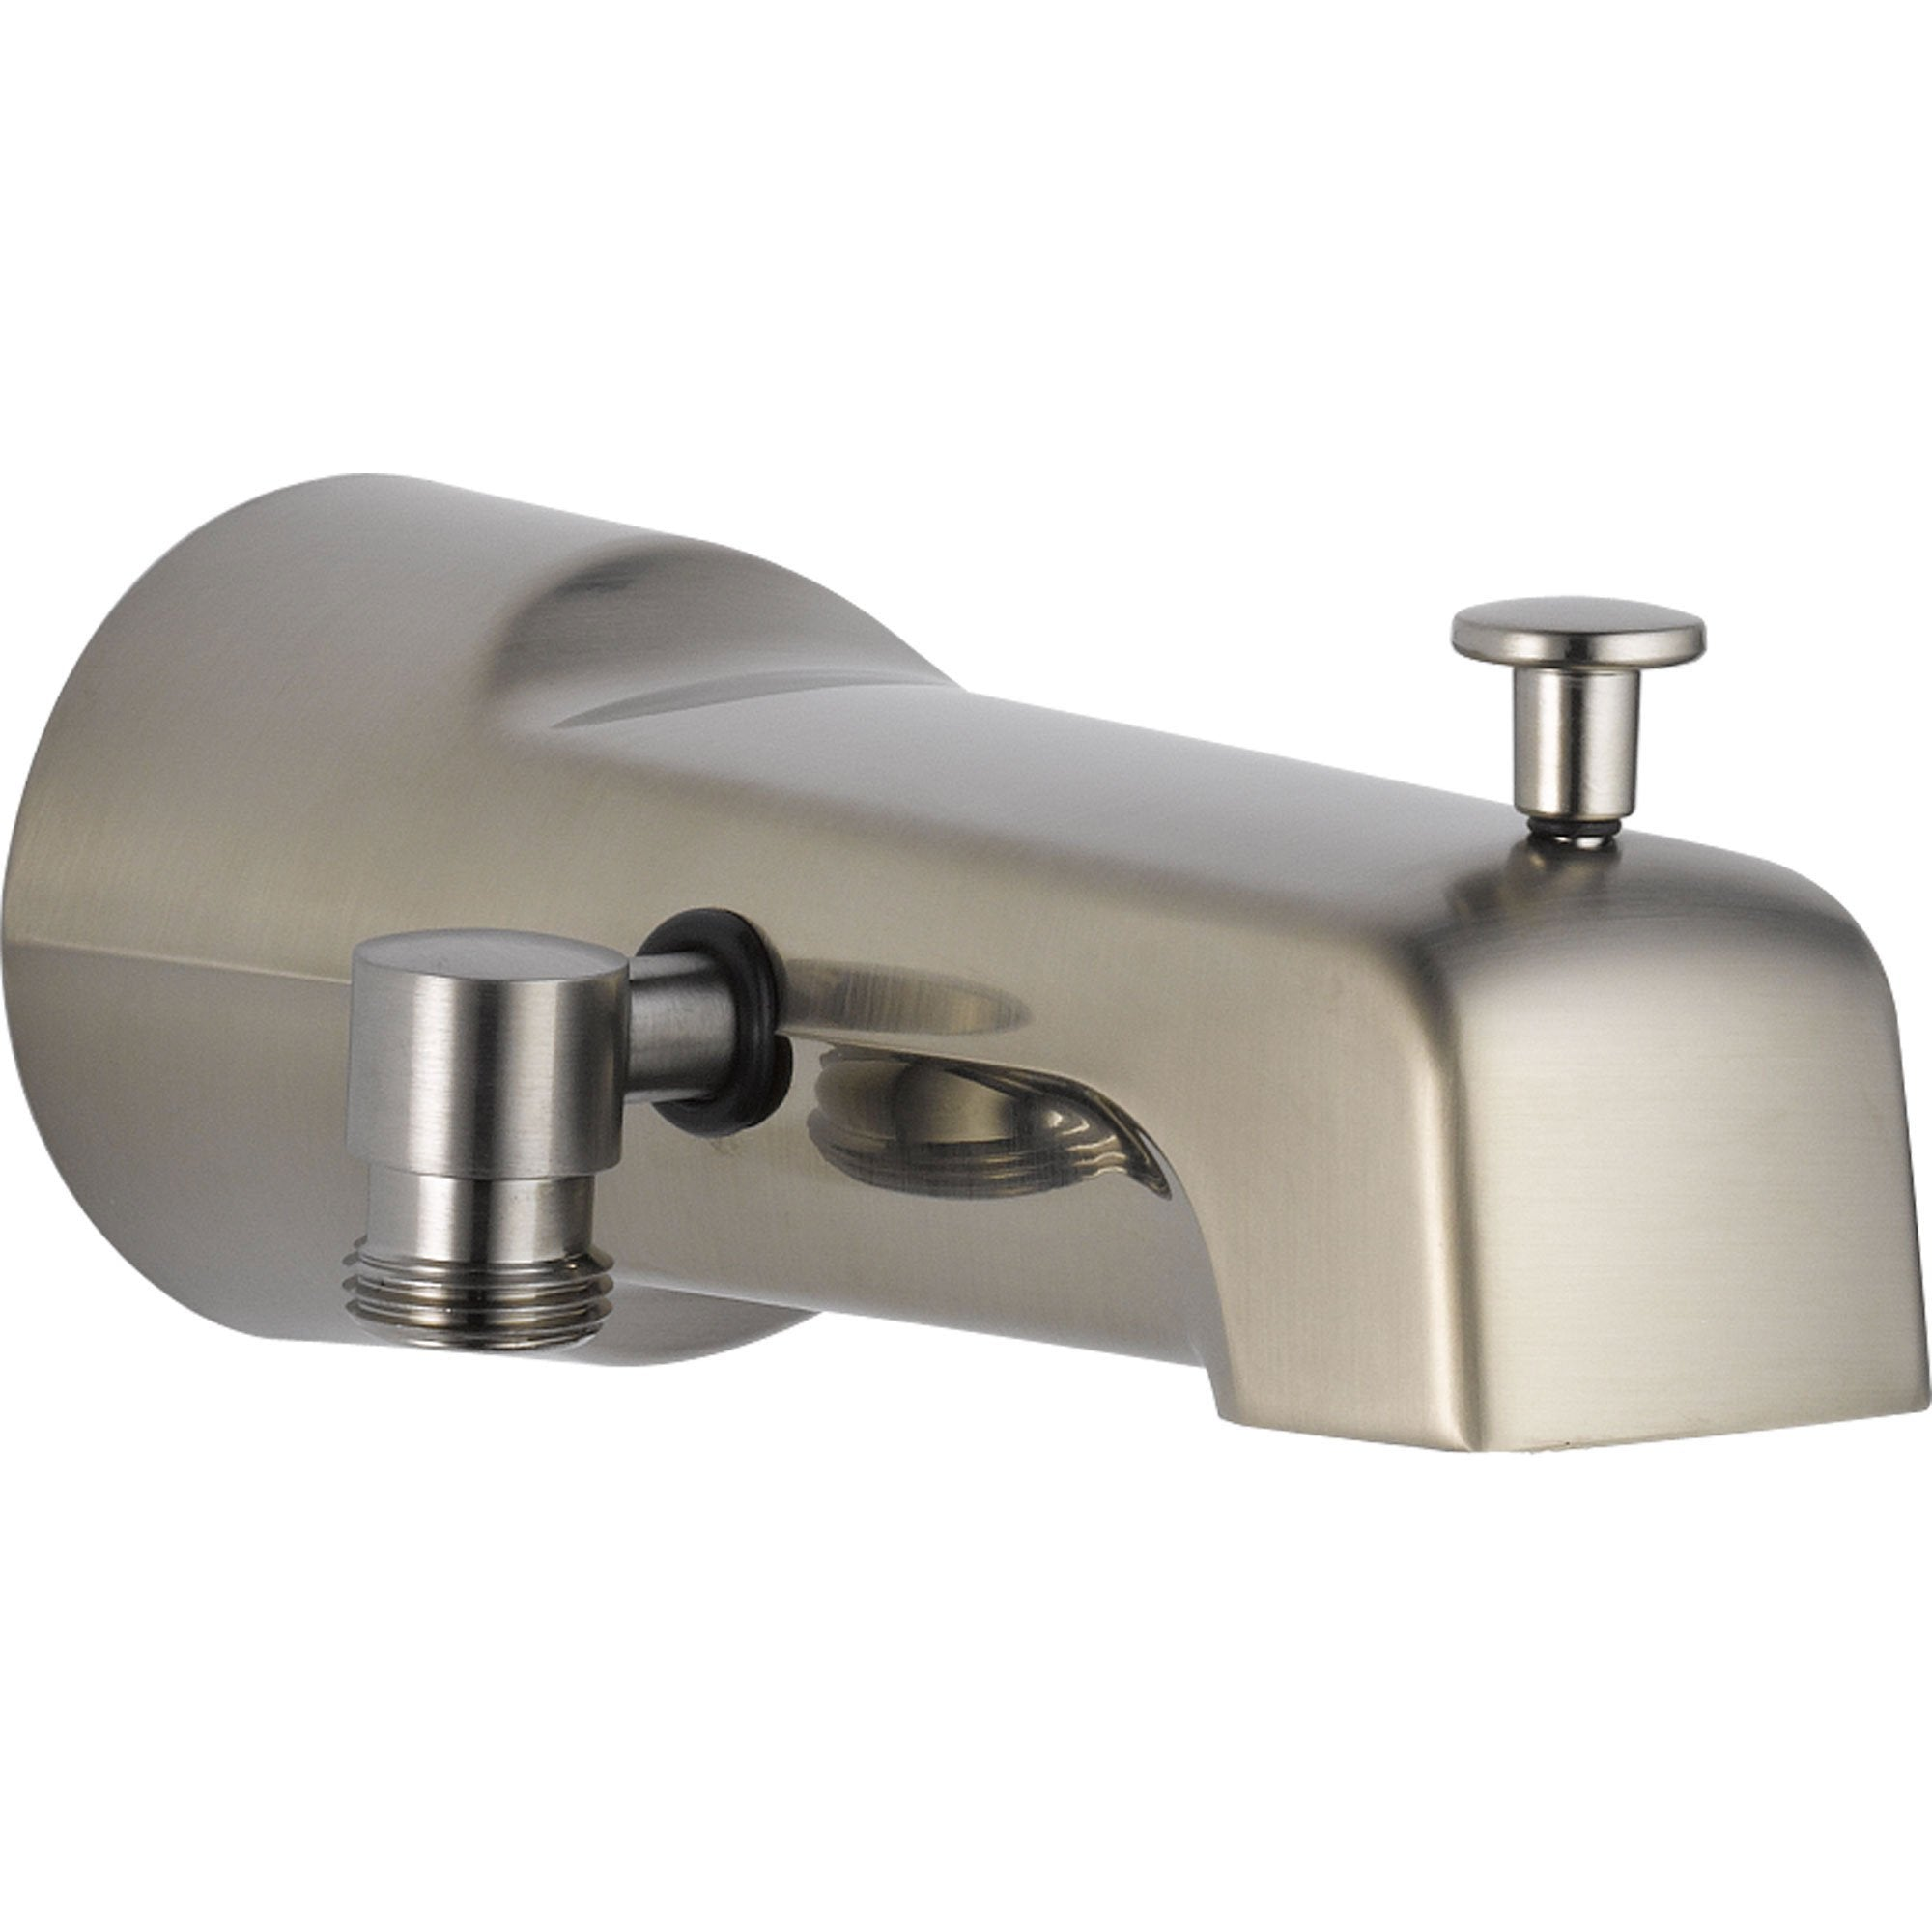 Delta Pull-up Diverter Tub Spout in Stainless Steel Finish 561296